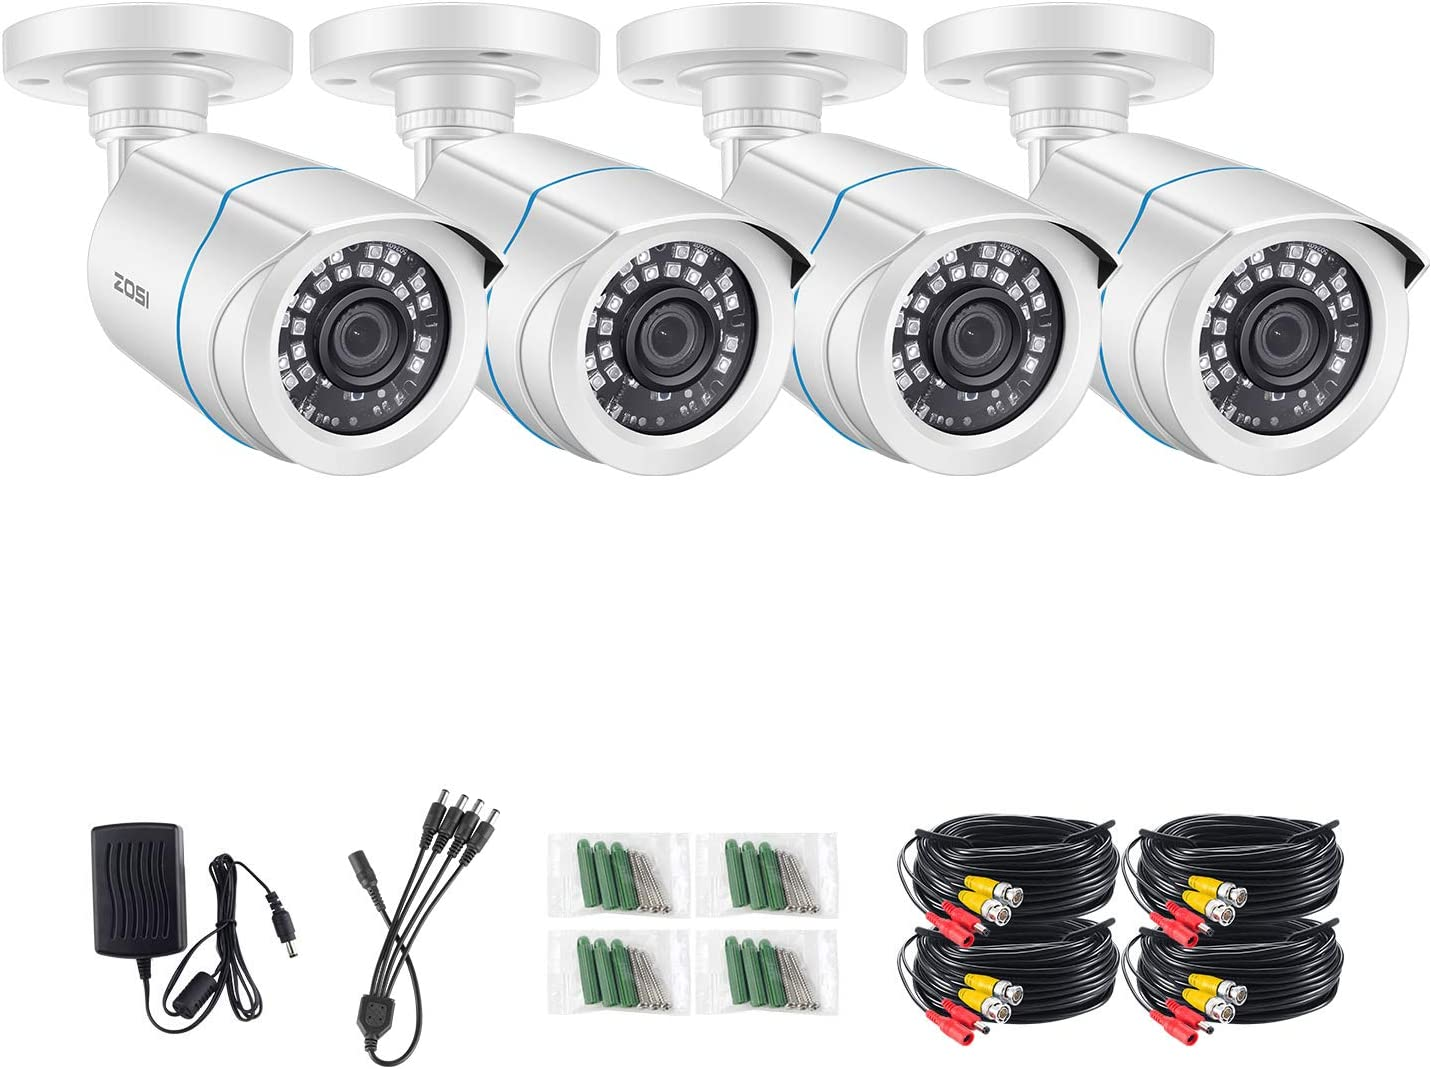 ZOSI 4 Pack FHD 1080p 2MP Security Bullet Cameras (Hybrid 4-in-1 HD-CVI/TVI/AHD/960H Analog CVBS),1920TVL Day Night WeatherproofCCTV Camera Indoor/Outdoor, Night Vision Up to 80FT